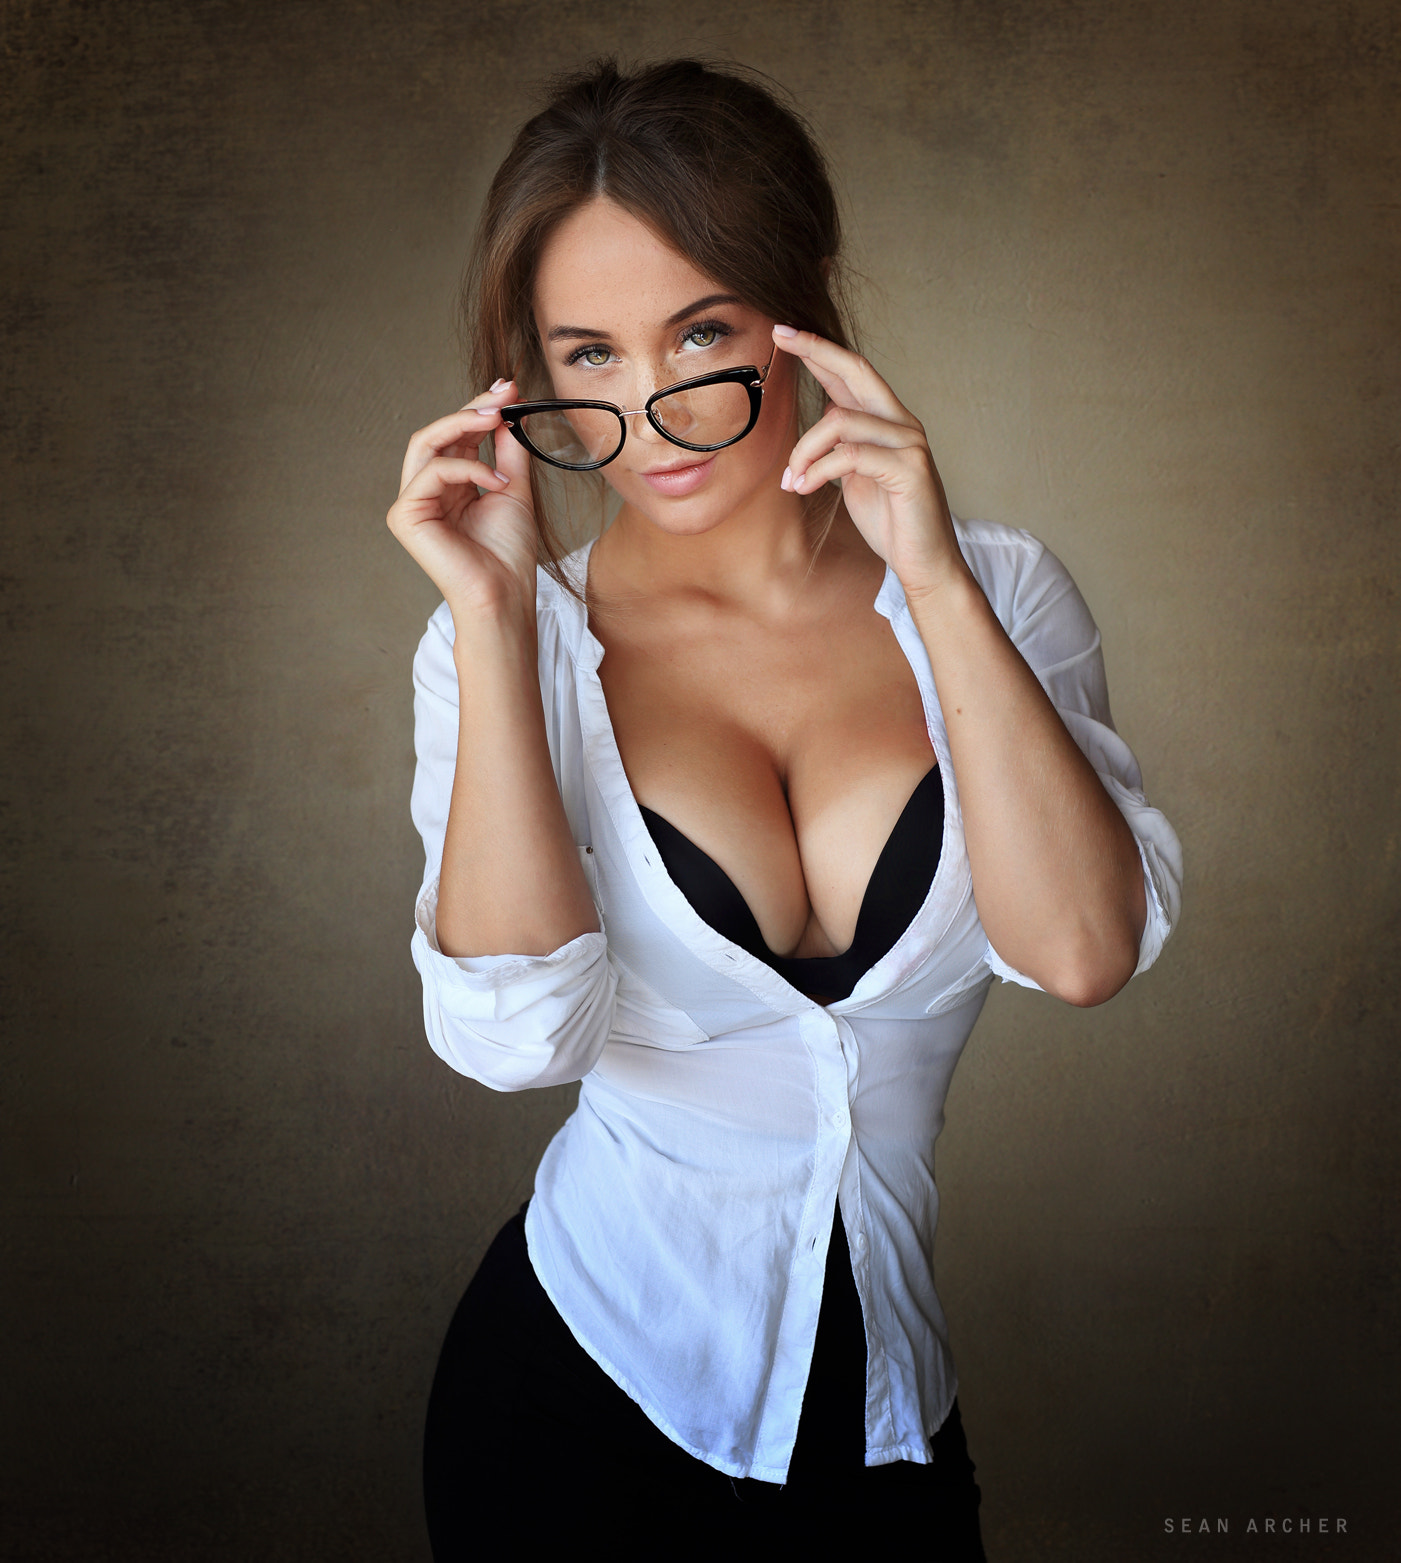 People 1401x1563 women model brunette looking at viewer boobs simple background women with glasses Sean Archer Olga Katysheva push-up bras